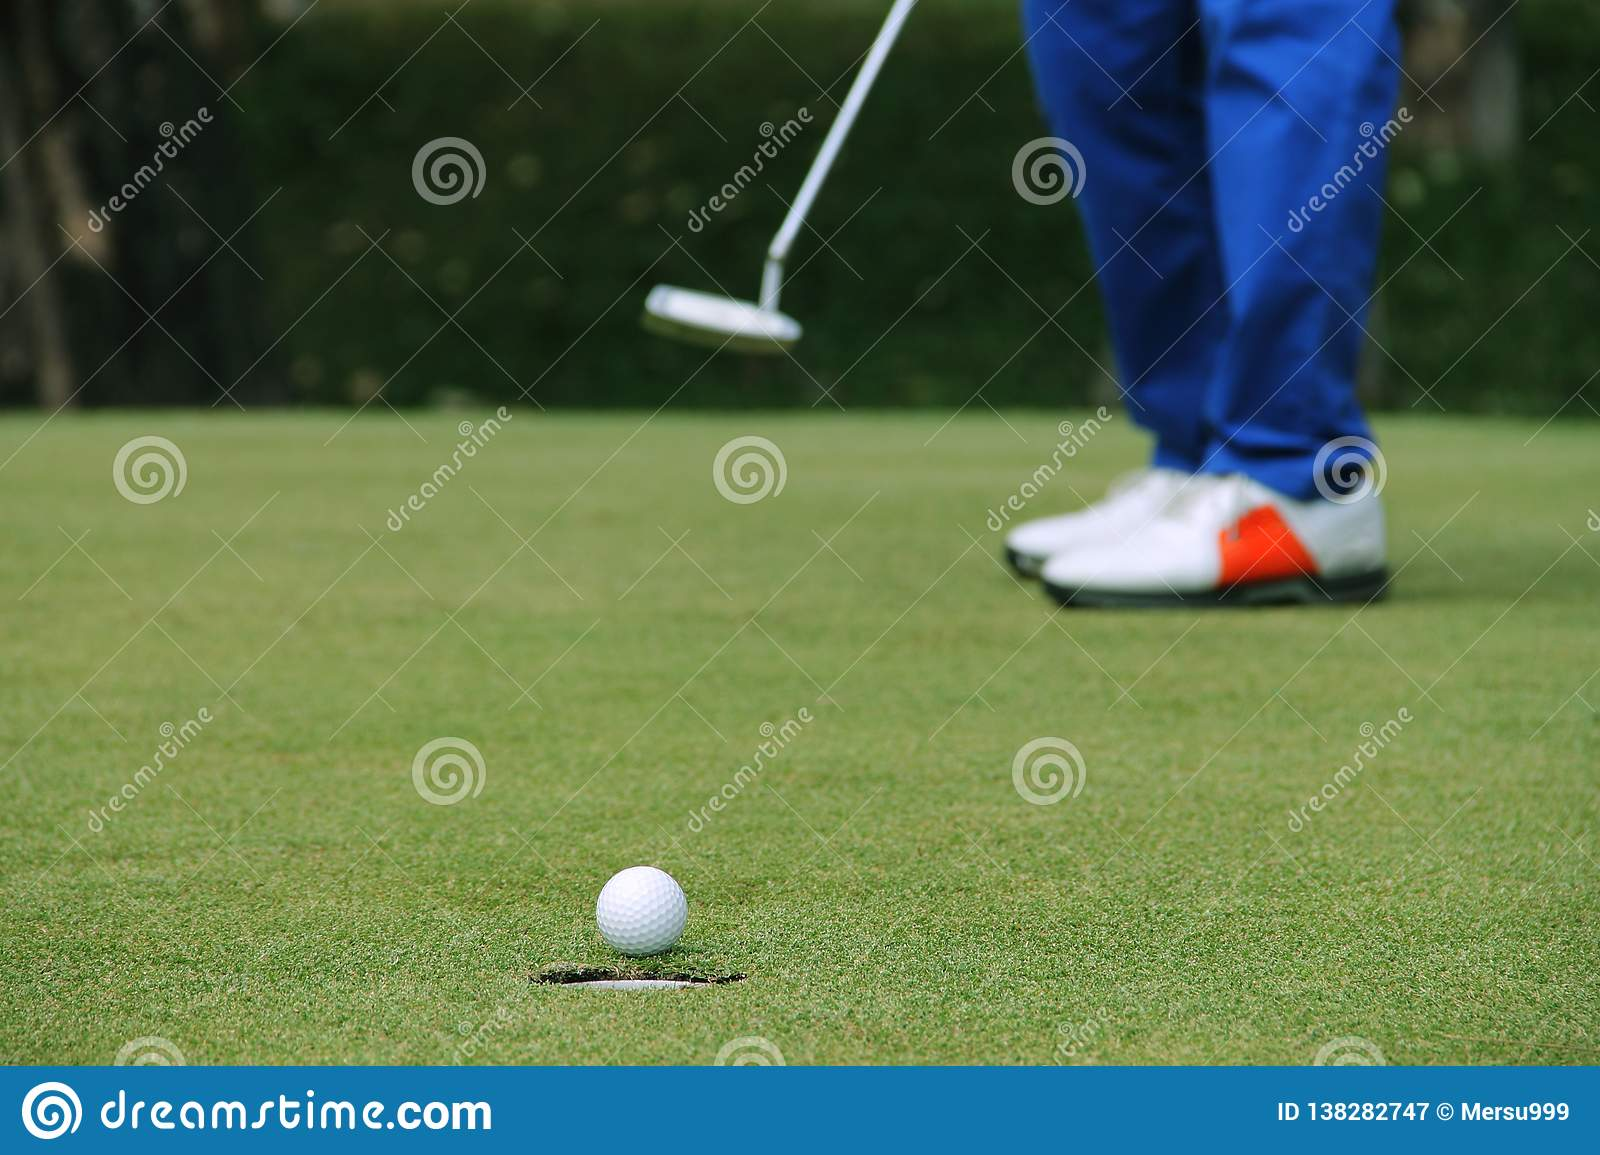 Golfer putting golf ball on the green golf